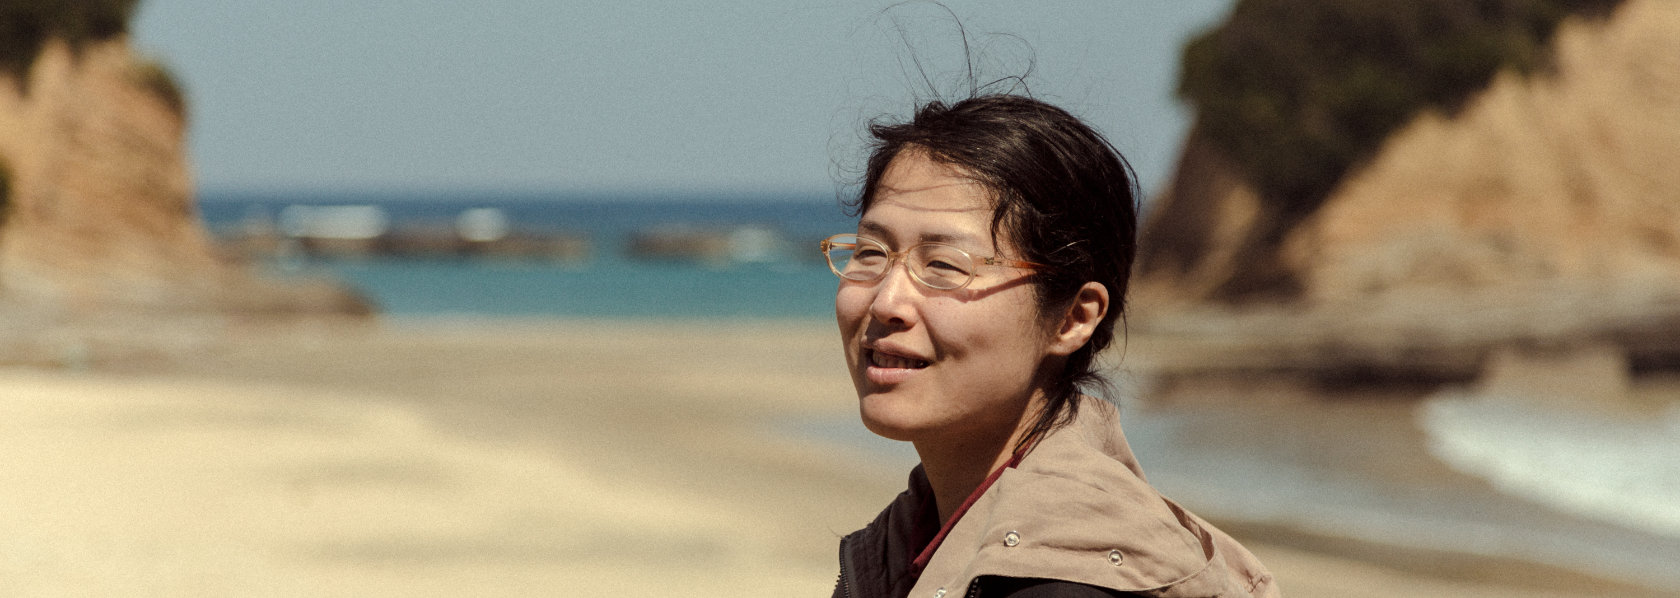 Woman at a beach - My Soul Drifts Light Upon a Sea of Trees - THIS Buddhist Film Festival